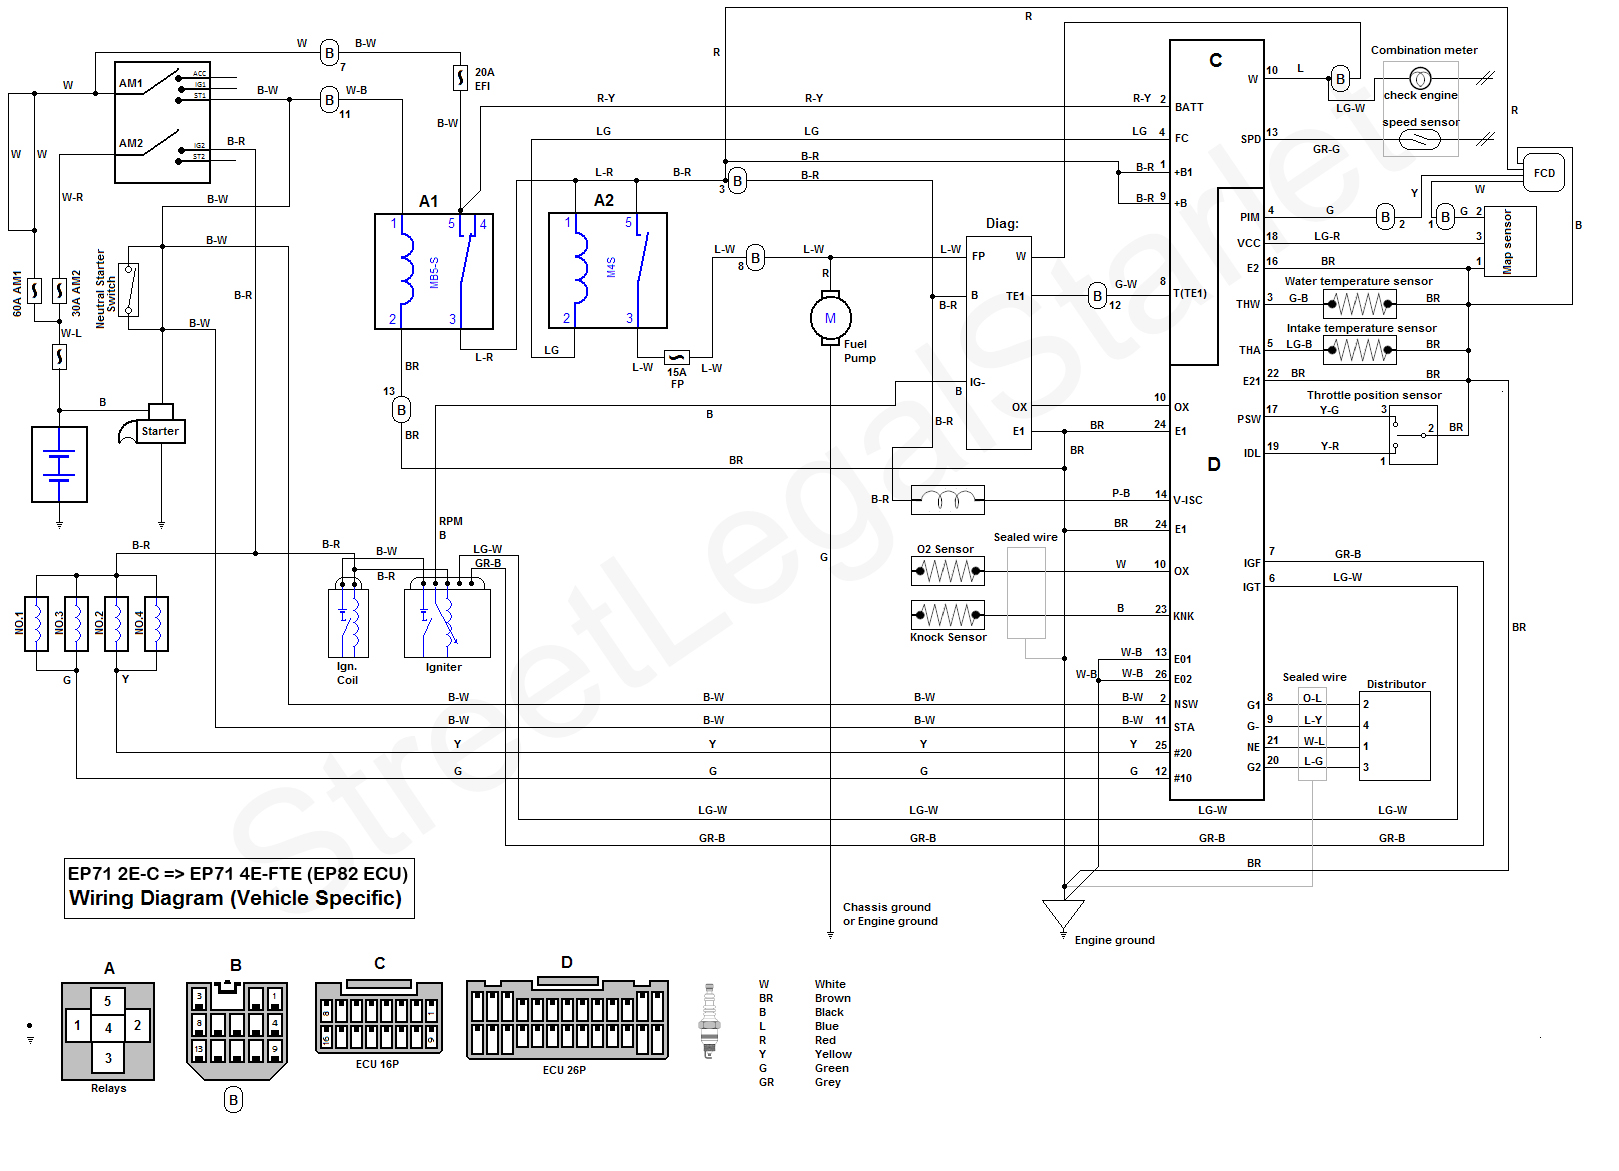 Toyota Starlet Radio Wiring Diagram - Wiring Diagram